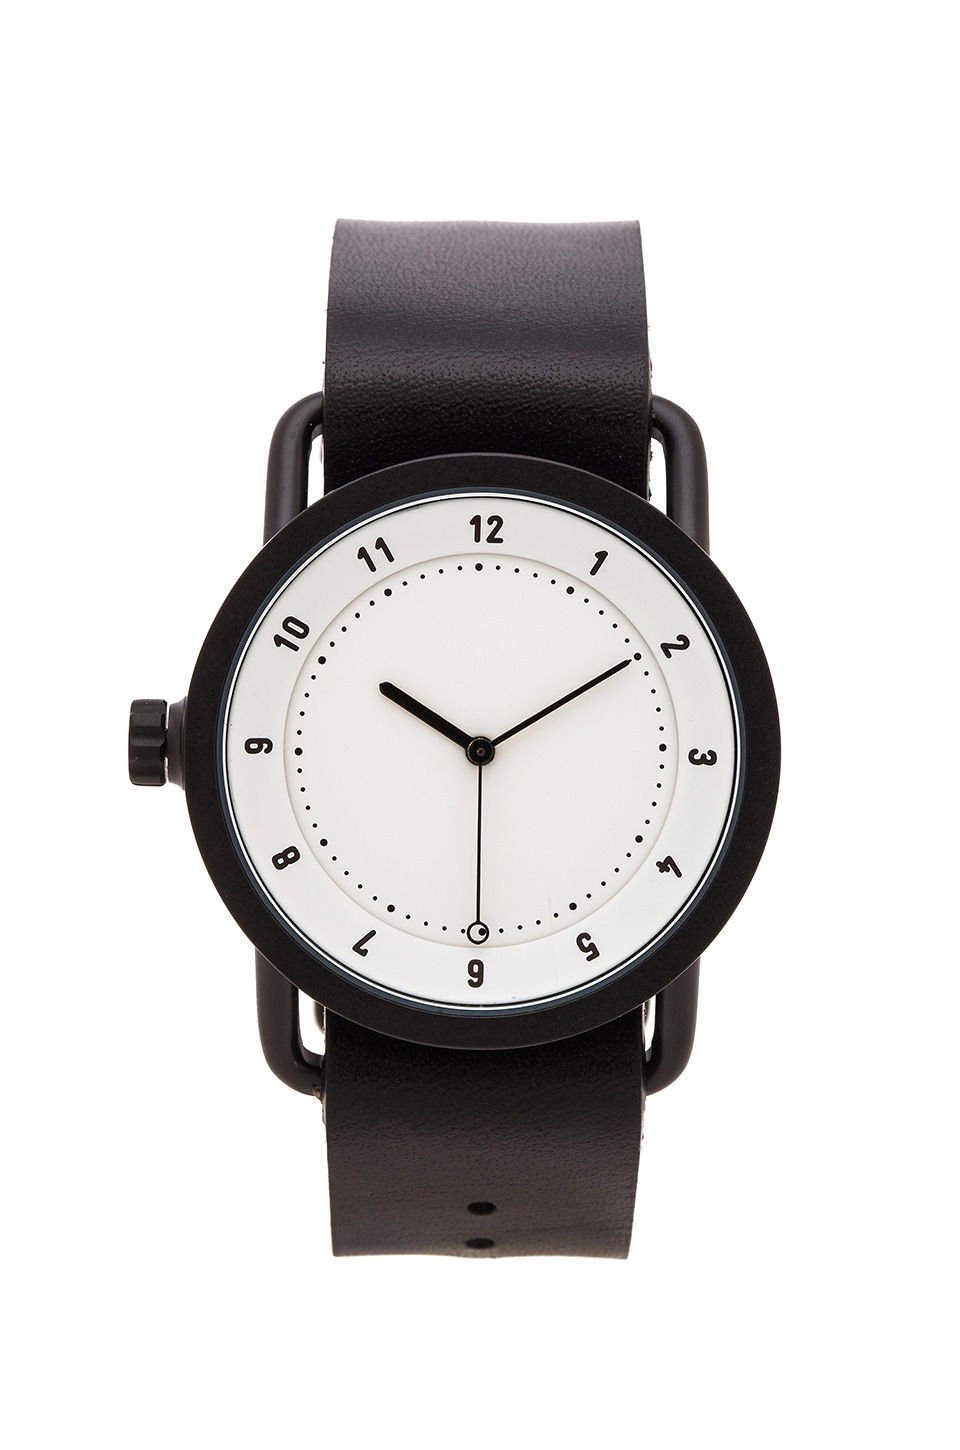 TID Watches No. 1 in White & Black Leather